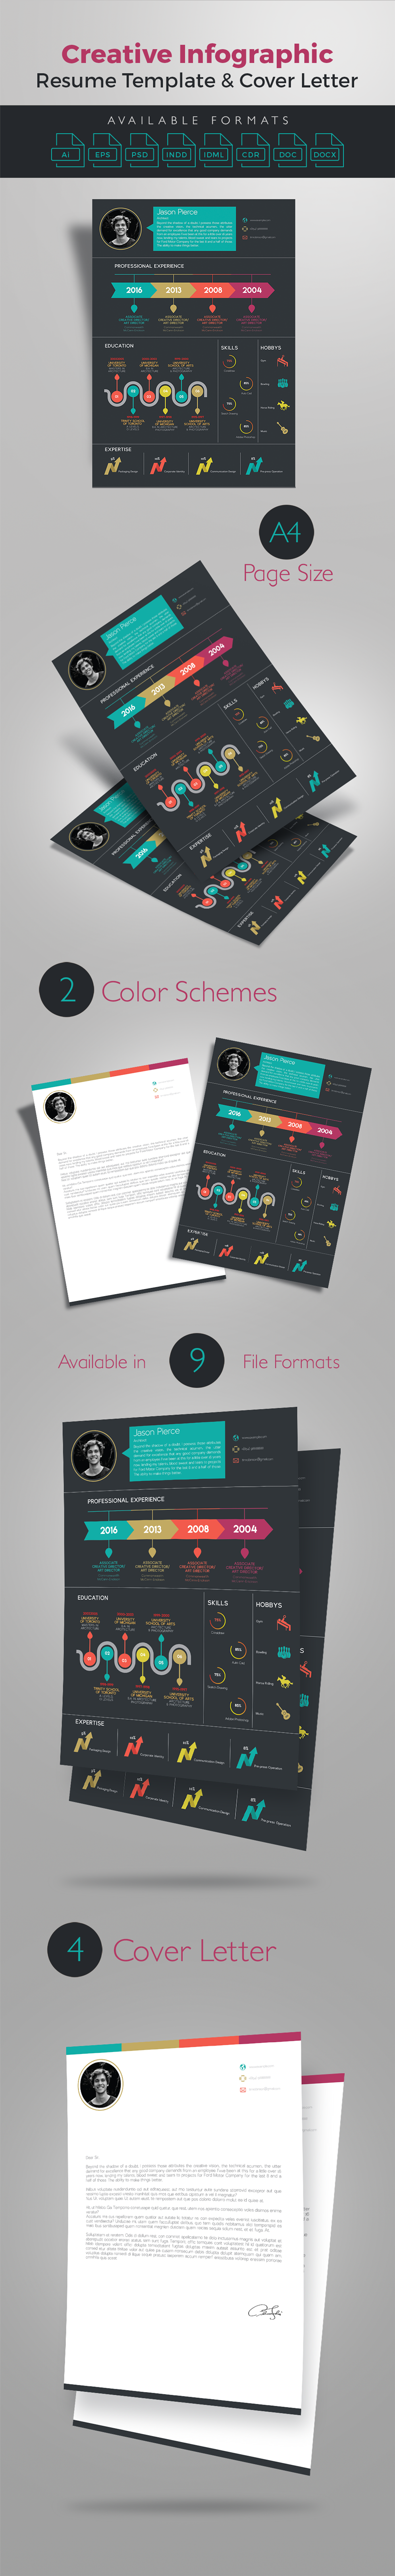 Creative Infographic Resume Template With Cover Letter | Premium Resumes